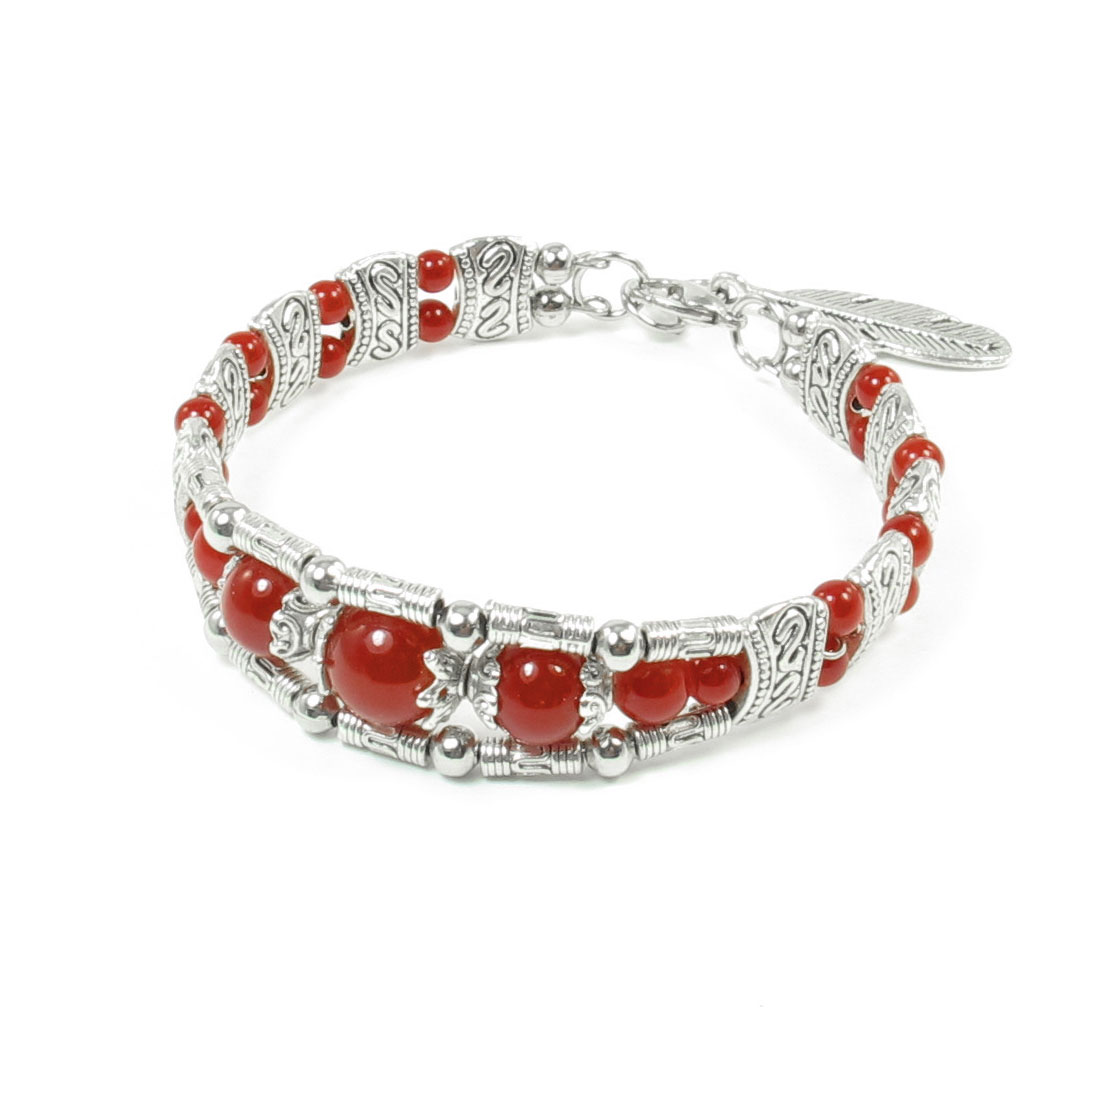 Ladies Lobster Closure Mini Cylinder Connected National Bracelet Red Silver Tone